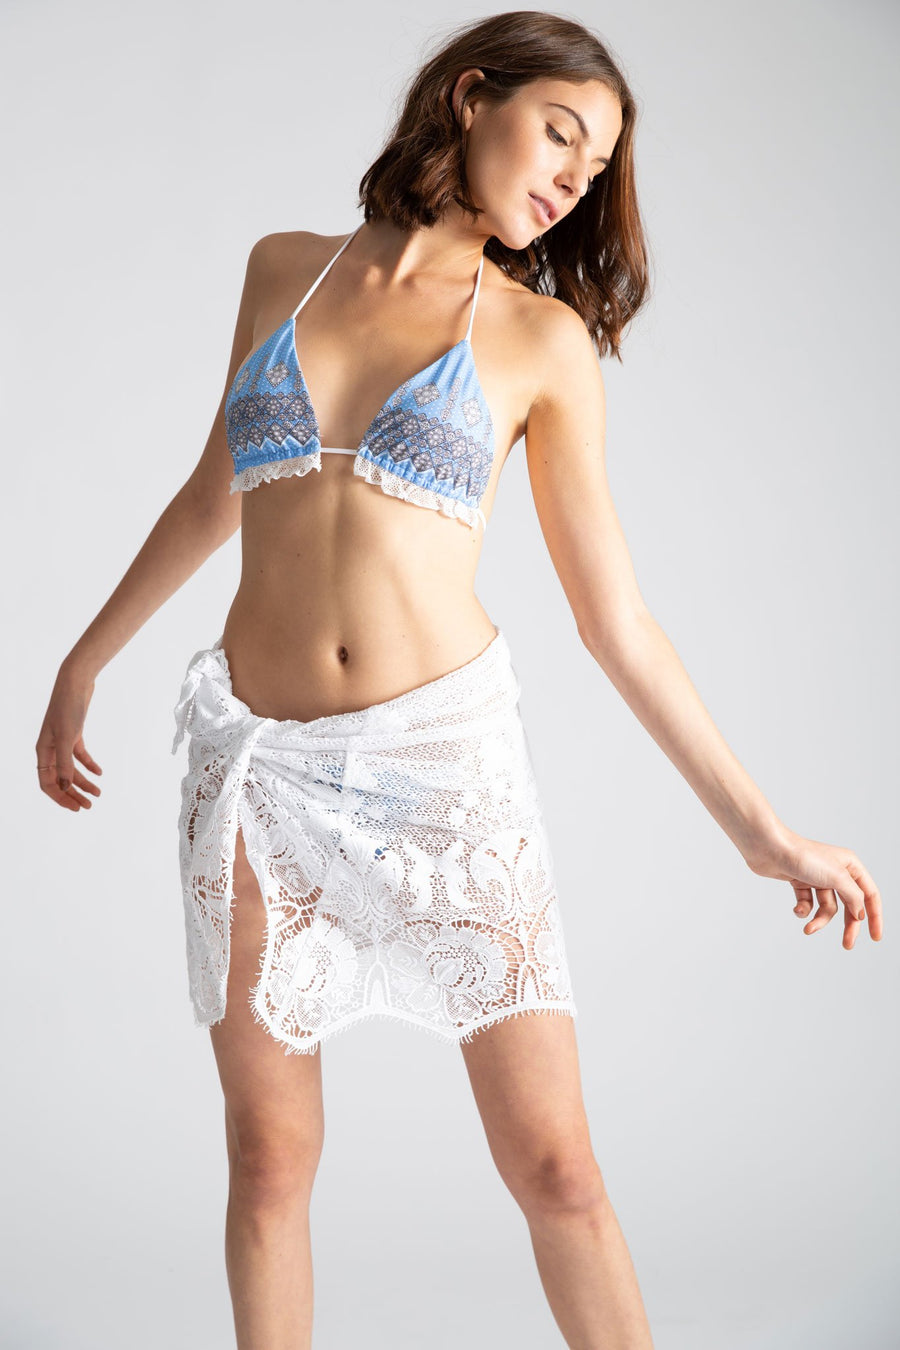 This is a photo of a woman wearing an all white lace mini pareo, tied on one side over a blue bikini. She glances over one shoulder.